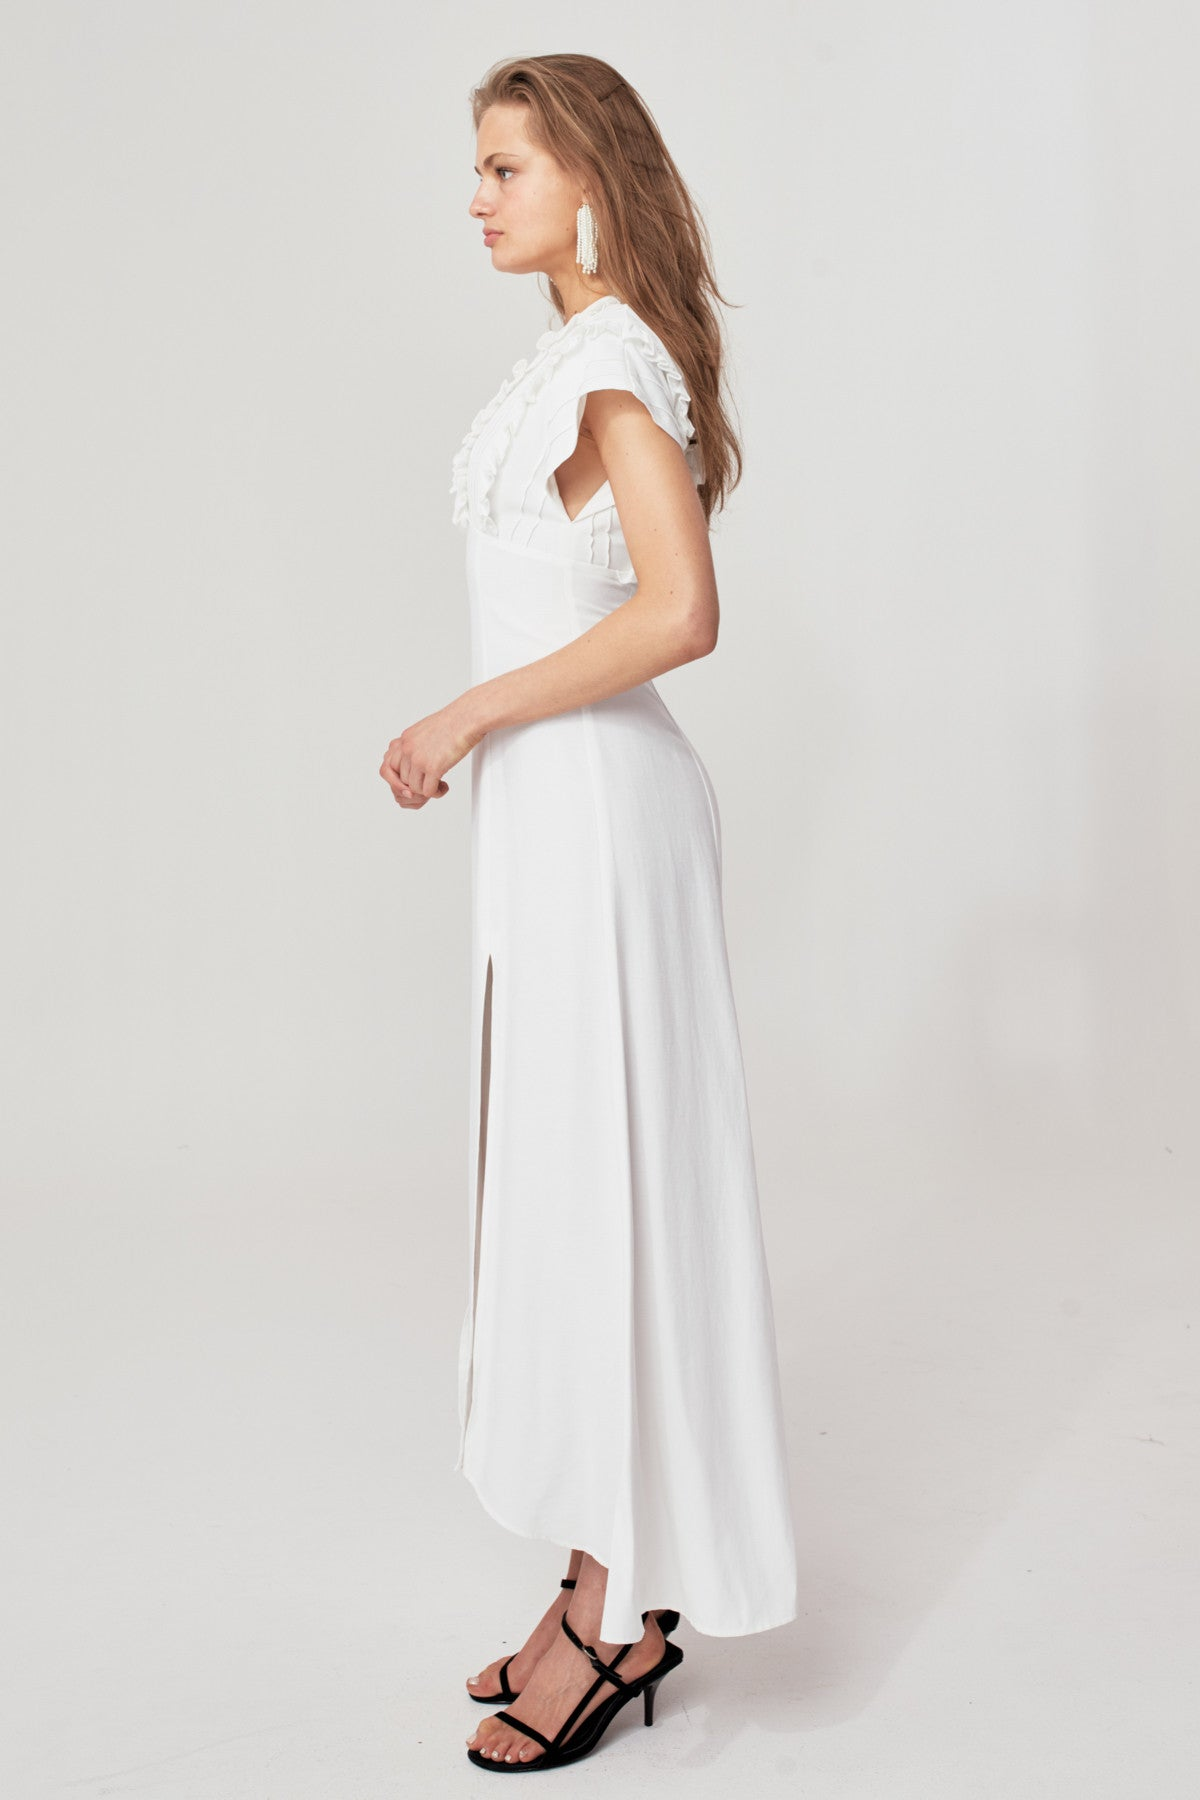 BREAK IN TWO GOWN ivory